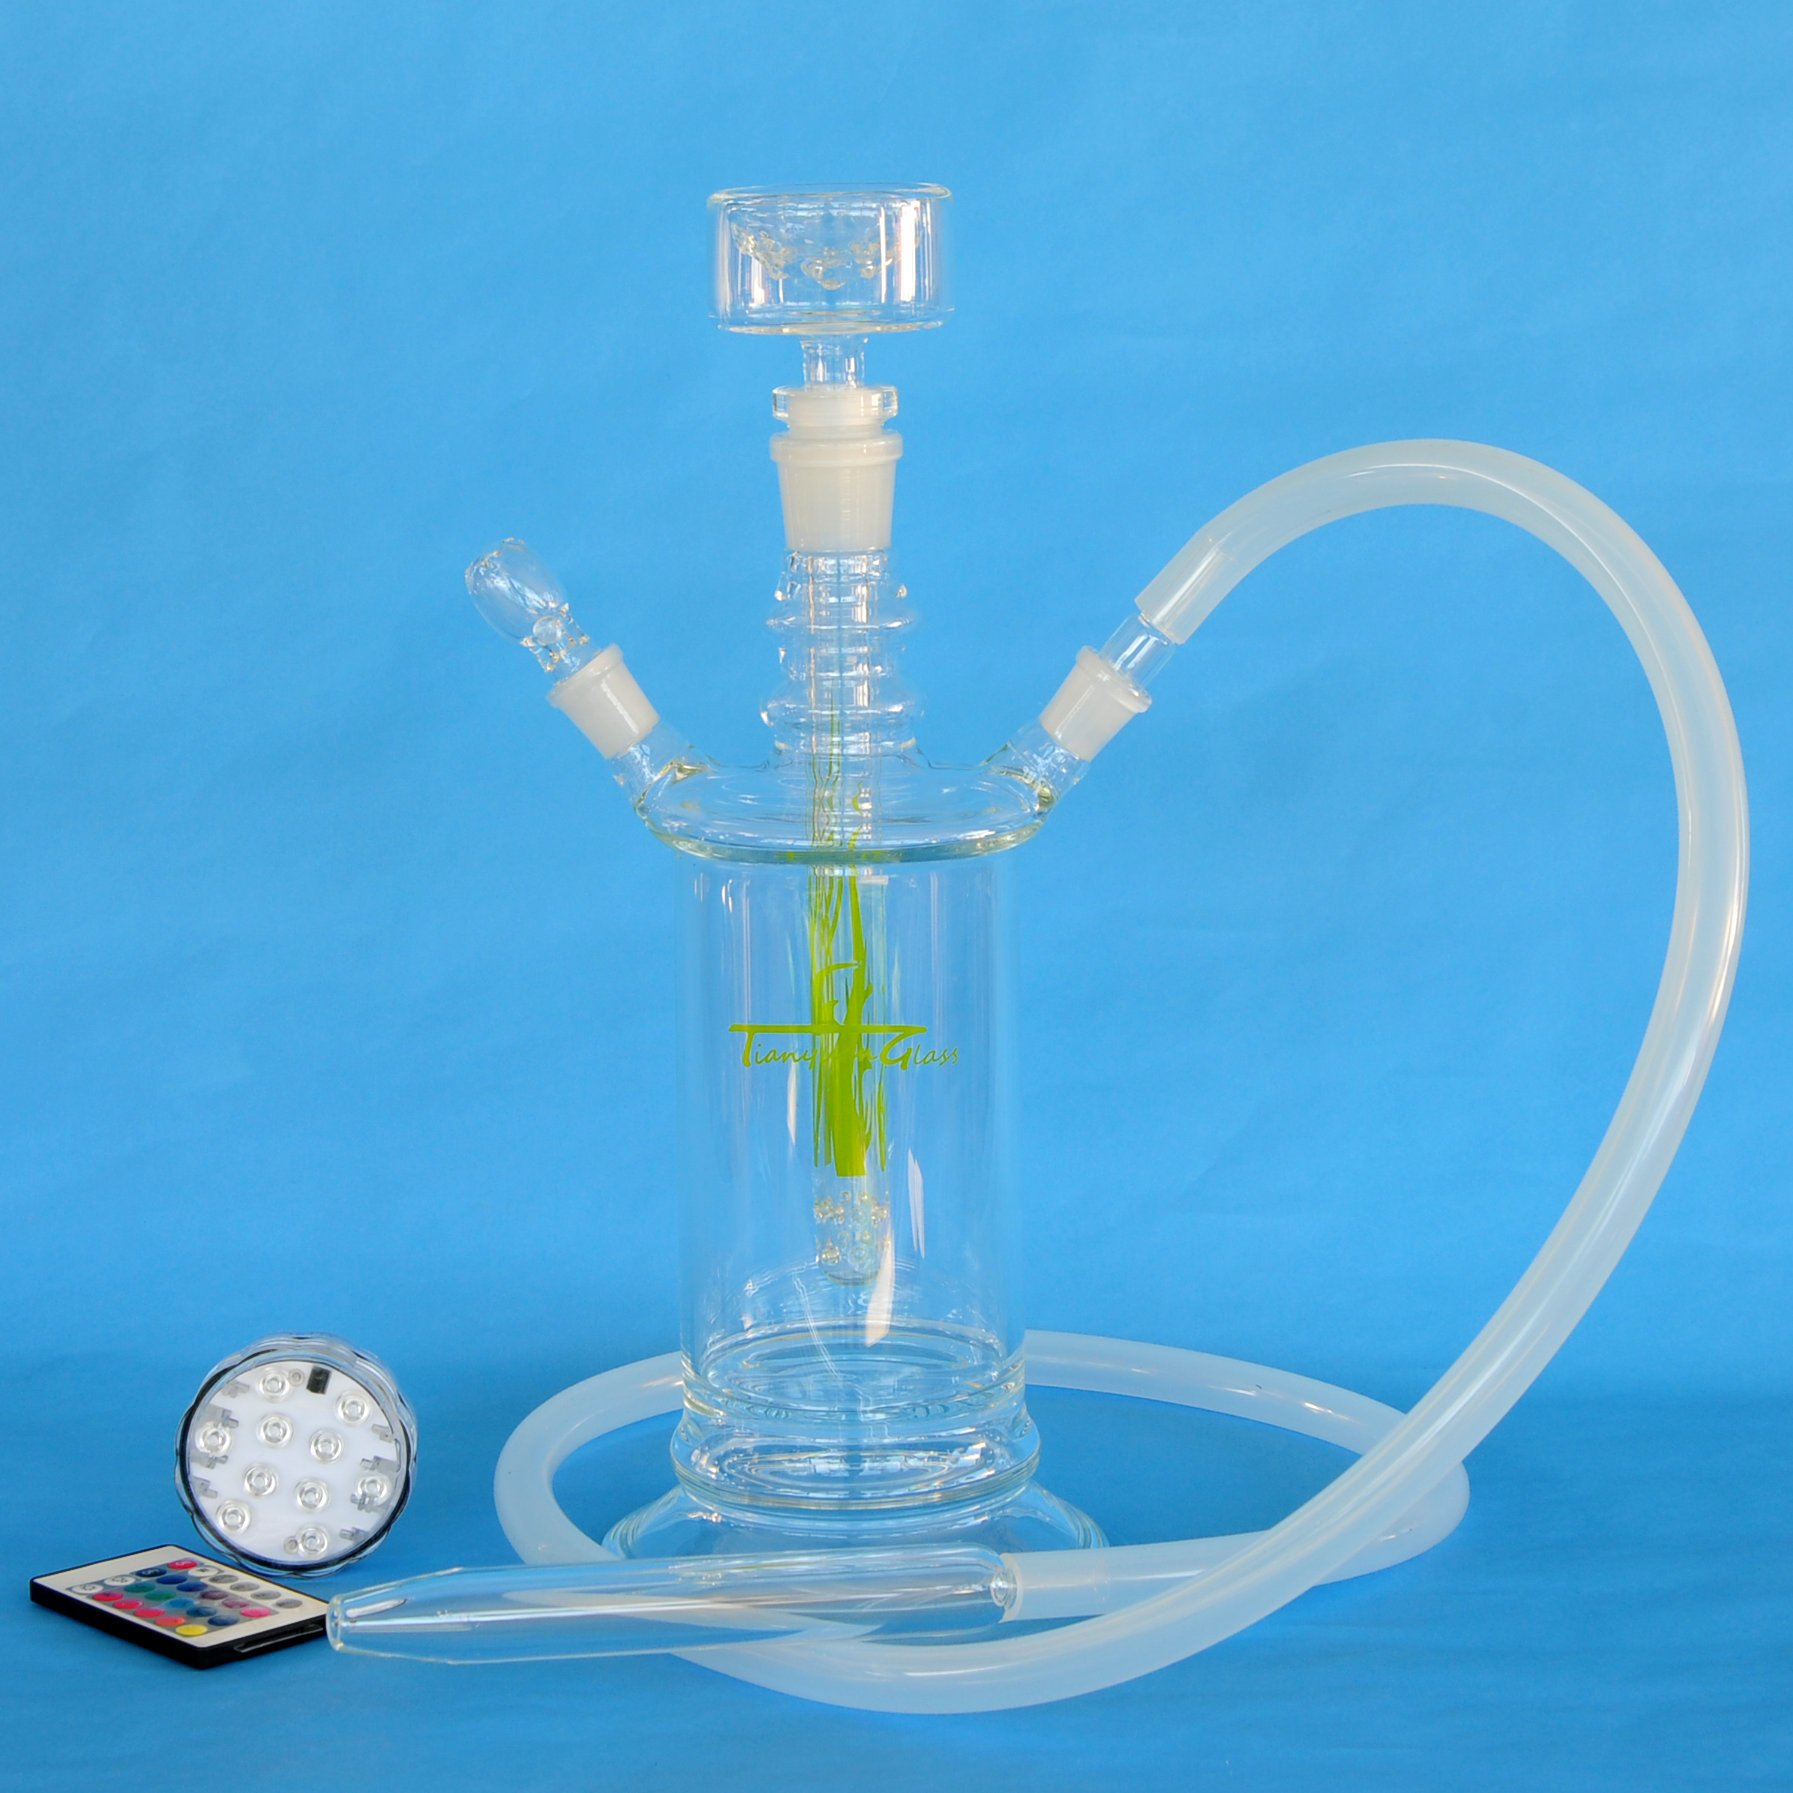 Tianyuan Glass All Glass Hookah Shisha 14'' with 4 Colors LED Light Base and Travel Code Case, Light Green (TY-HK15-CH)